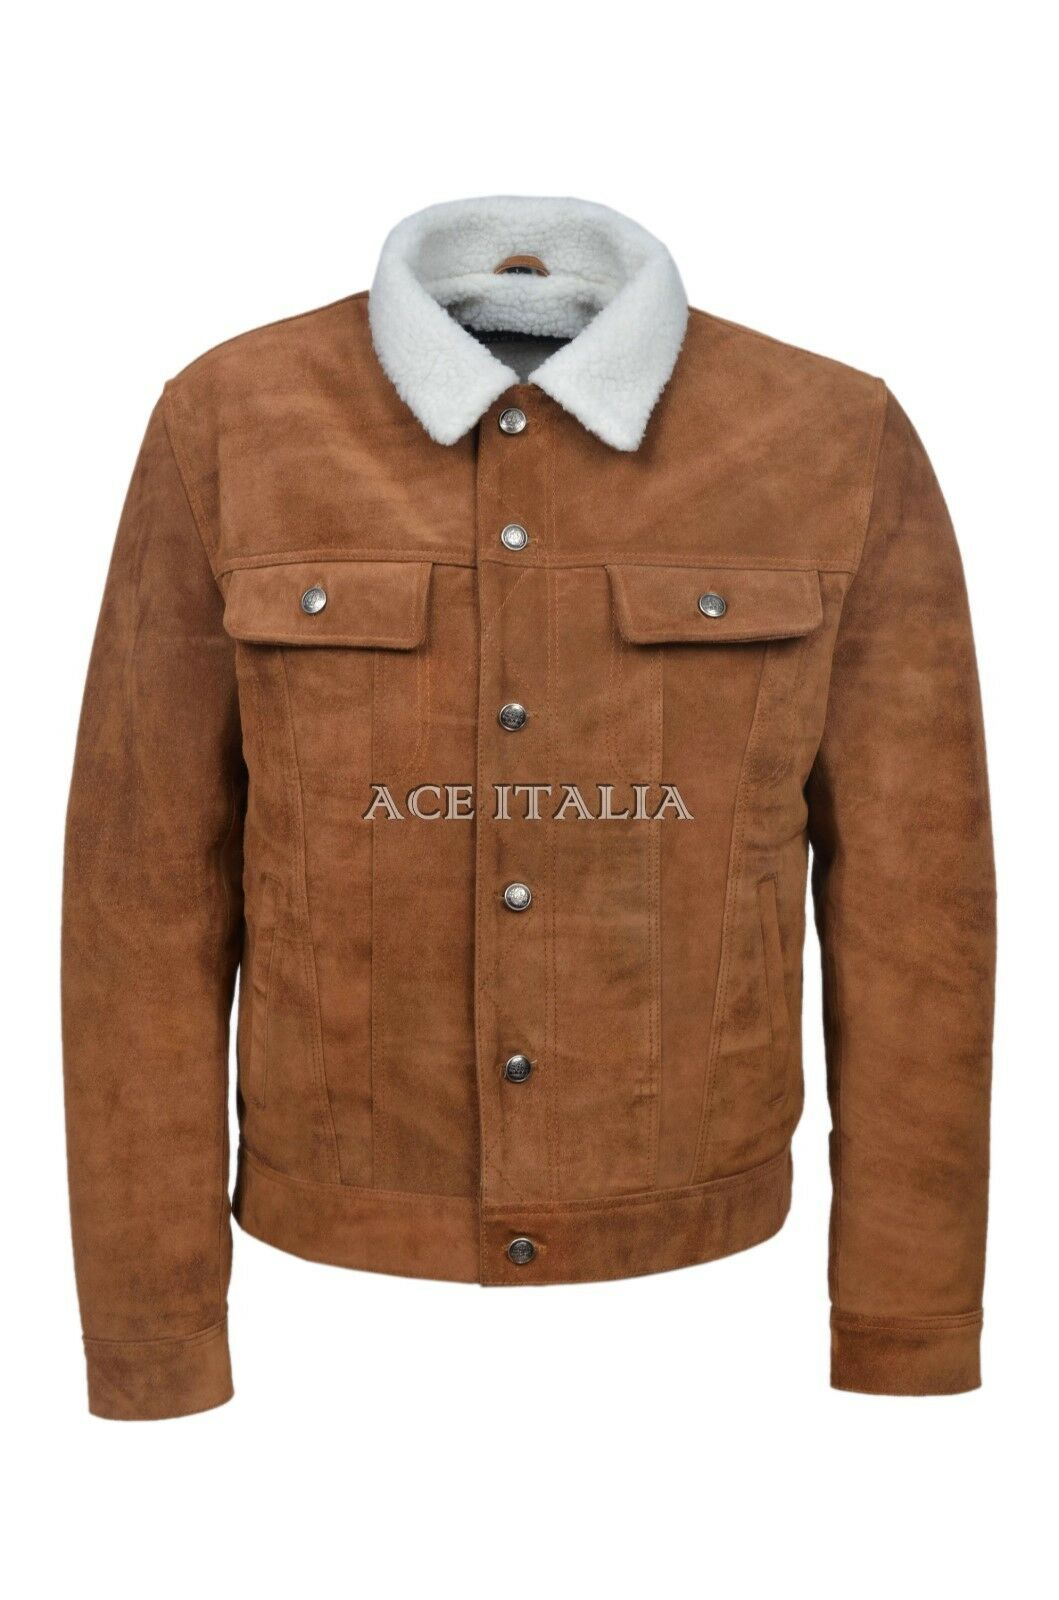 Men Lewis Jeans Jacket Real Suede Leather Tan Borg Faux Shear Ling Lined Jacket